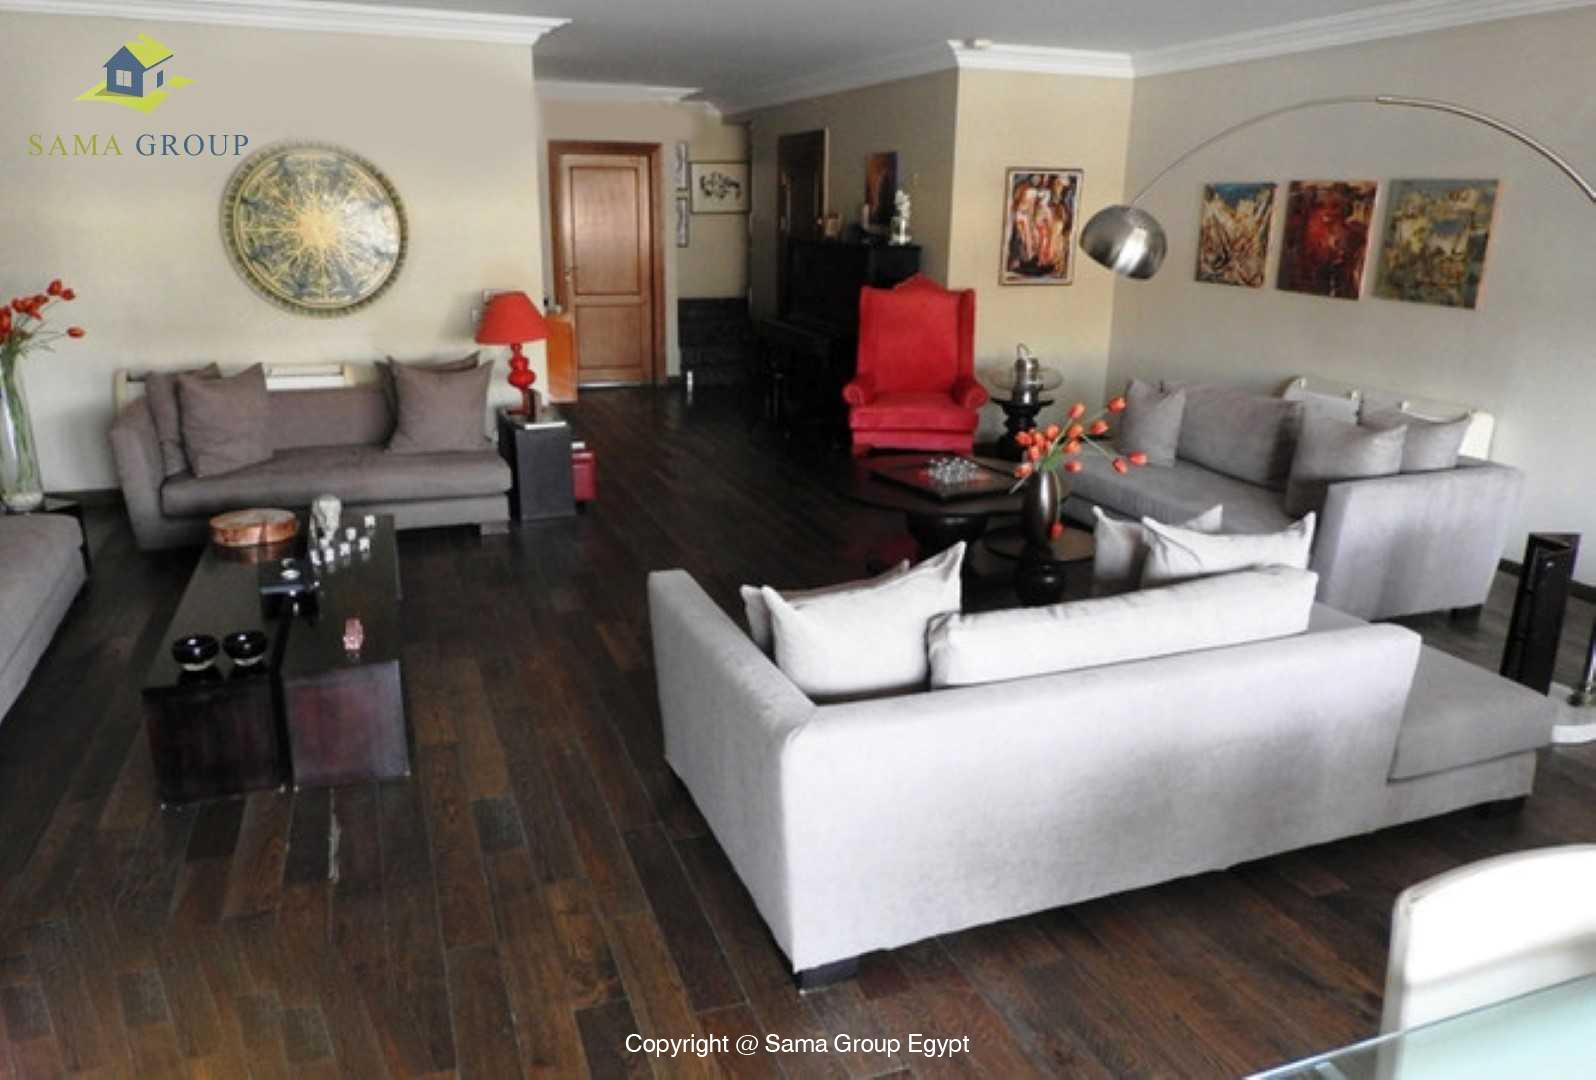 Penthouse with Swimming Pool For Rent In Maadi,Modern Furnished,Penthouse NO #1